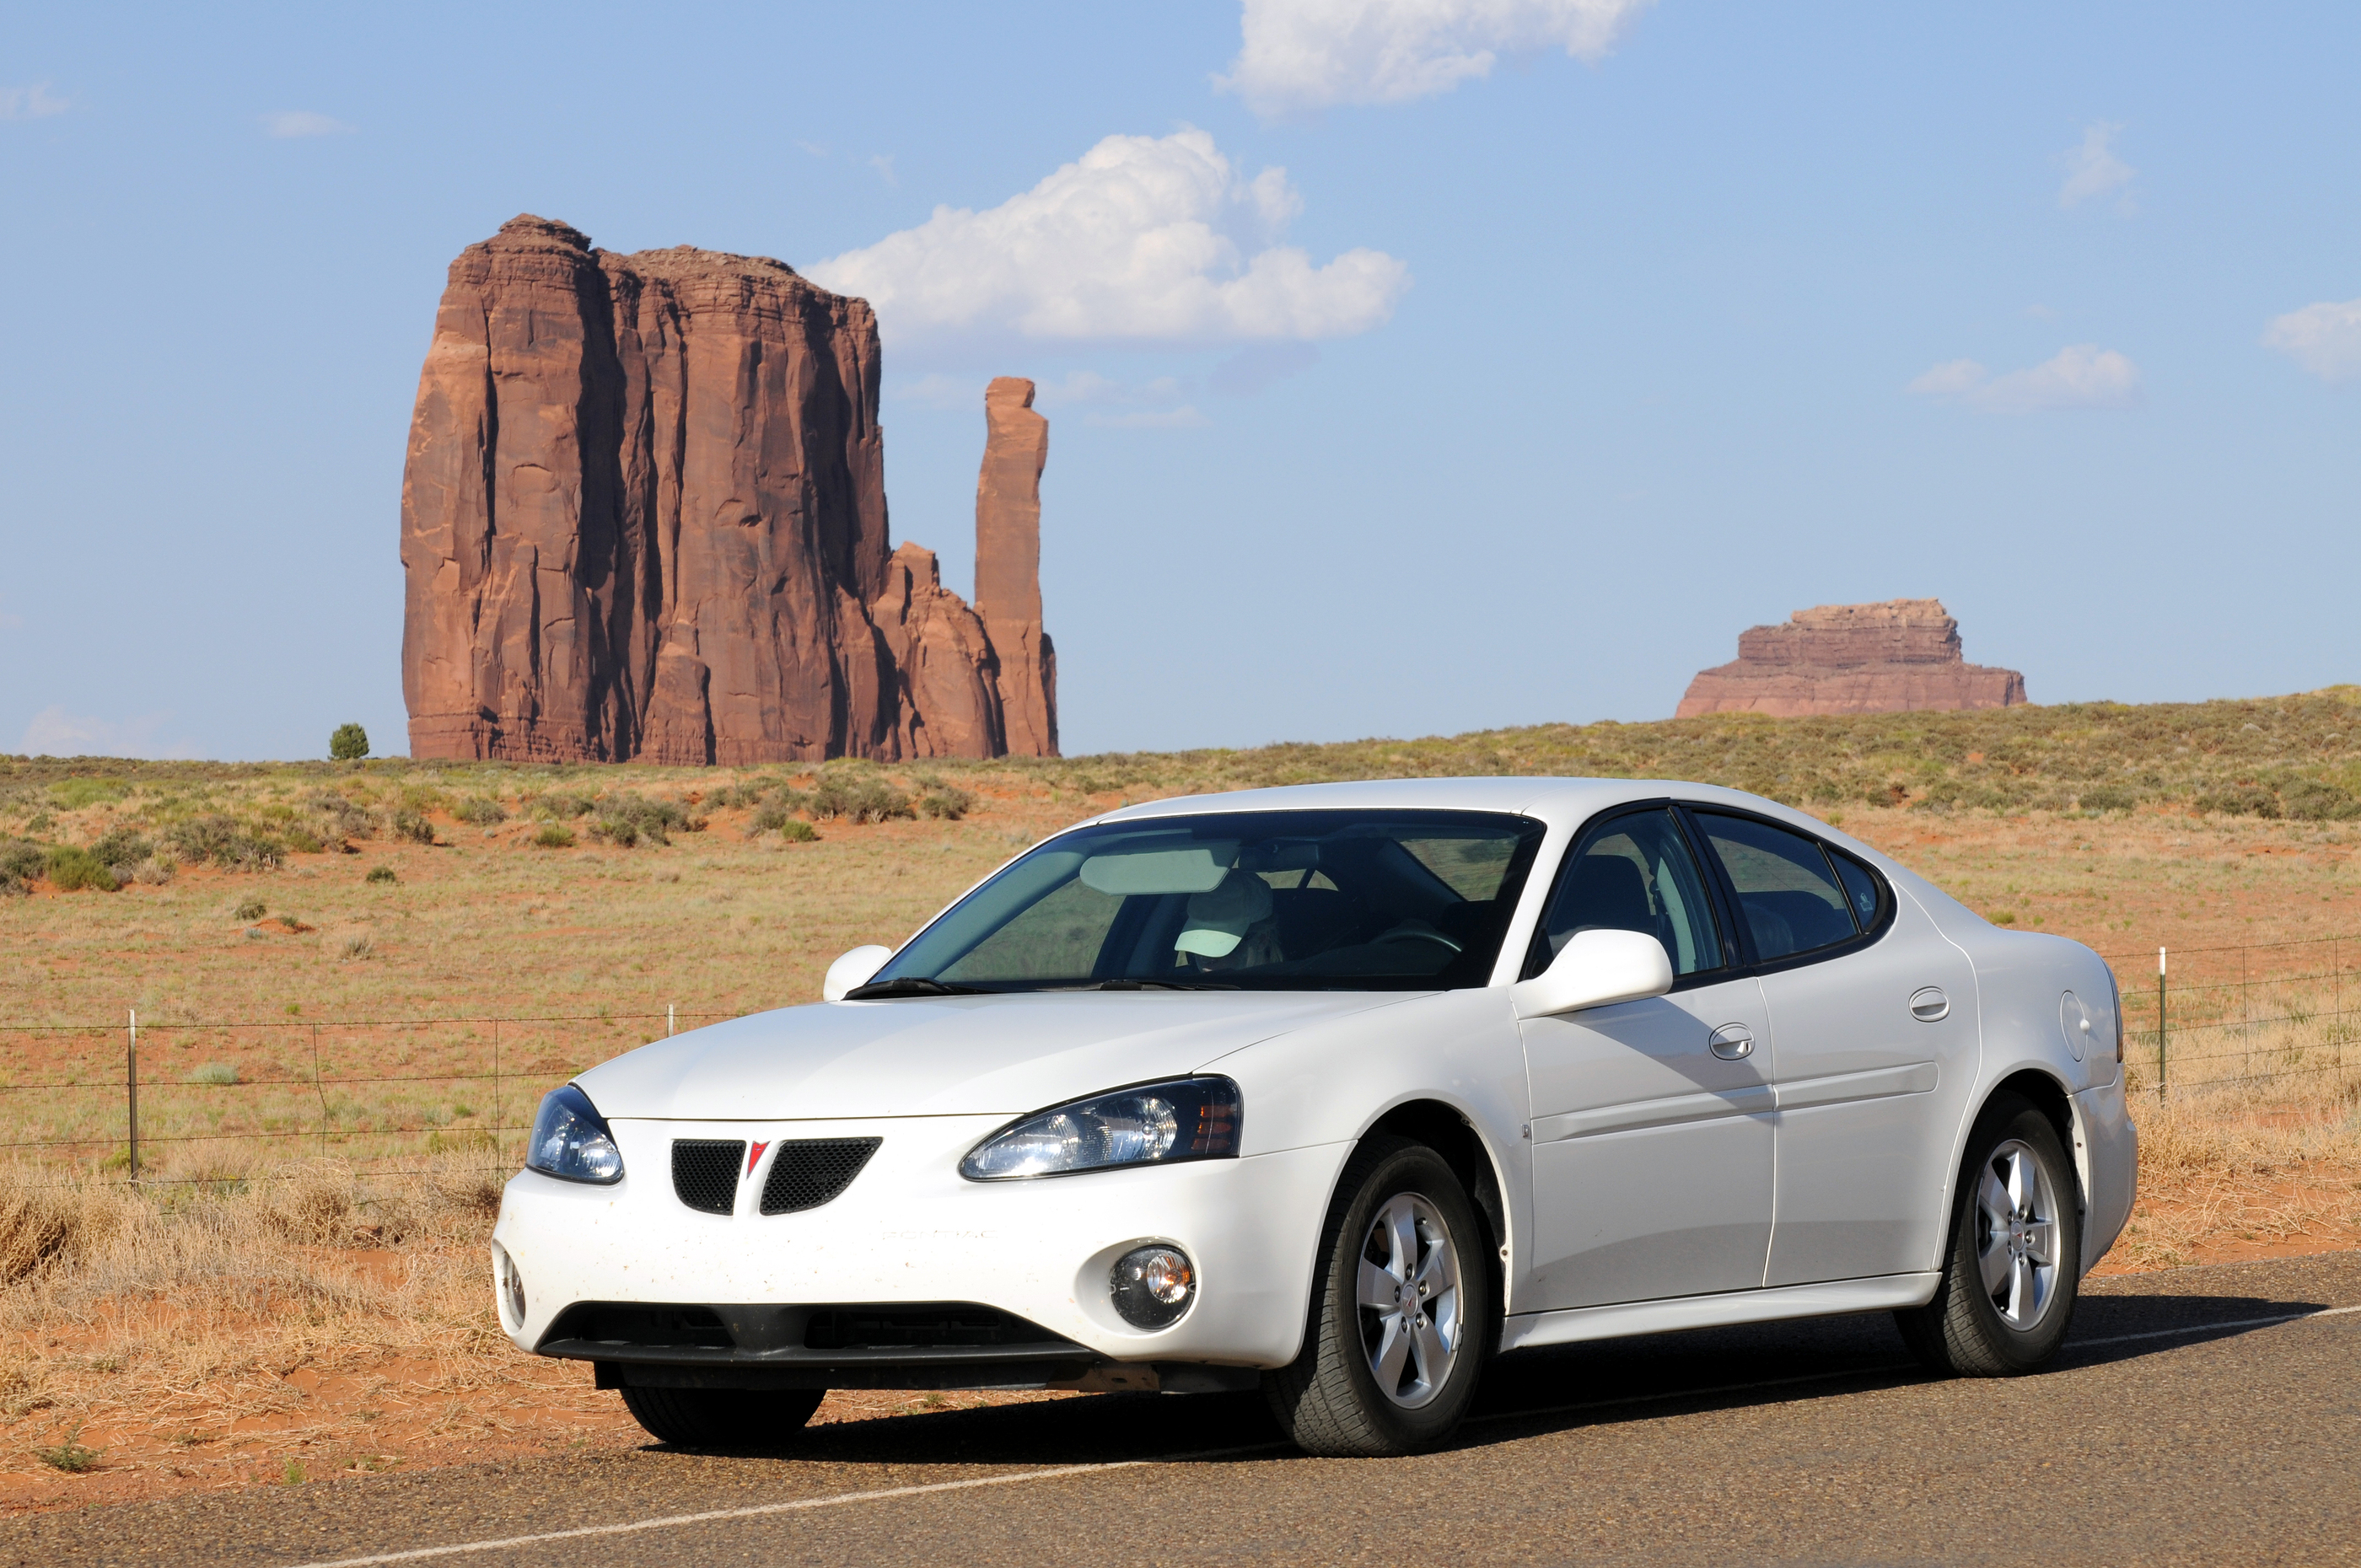 MONUMENT VALLEY, AZ - JUNE 22: SALES OF PONTIAC GRAND PRIX, PICTURED IN AN ICONIC DESERT SETTING IN MONUMENT VALLEY, ARIZONA, ON JUNE 22, 2008, ARE DOWN BECAUSE OF HIGH GAS PRICES. BY 1PHOTO